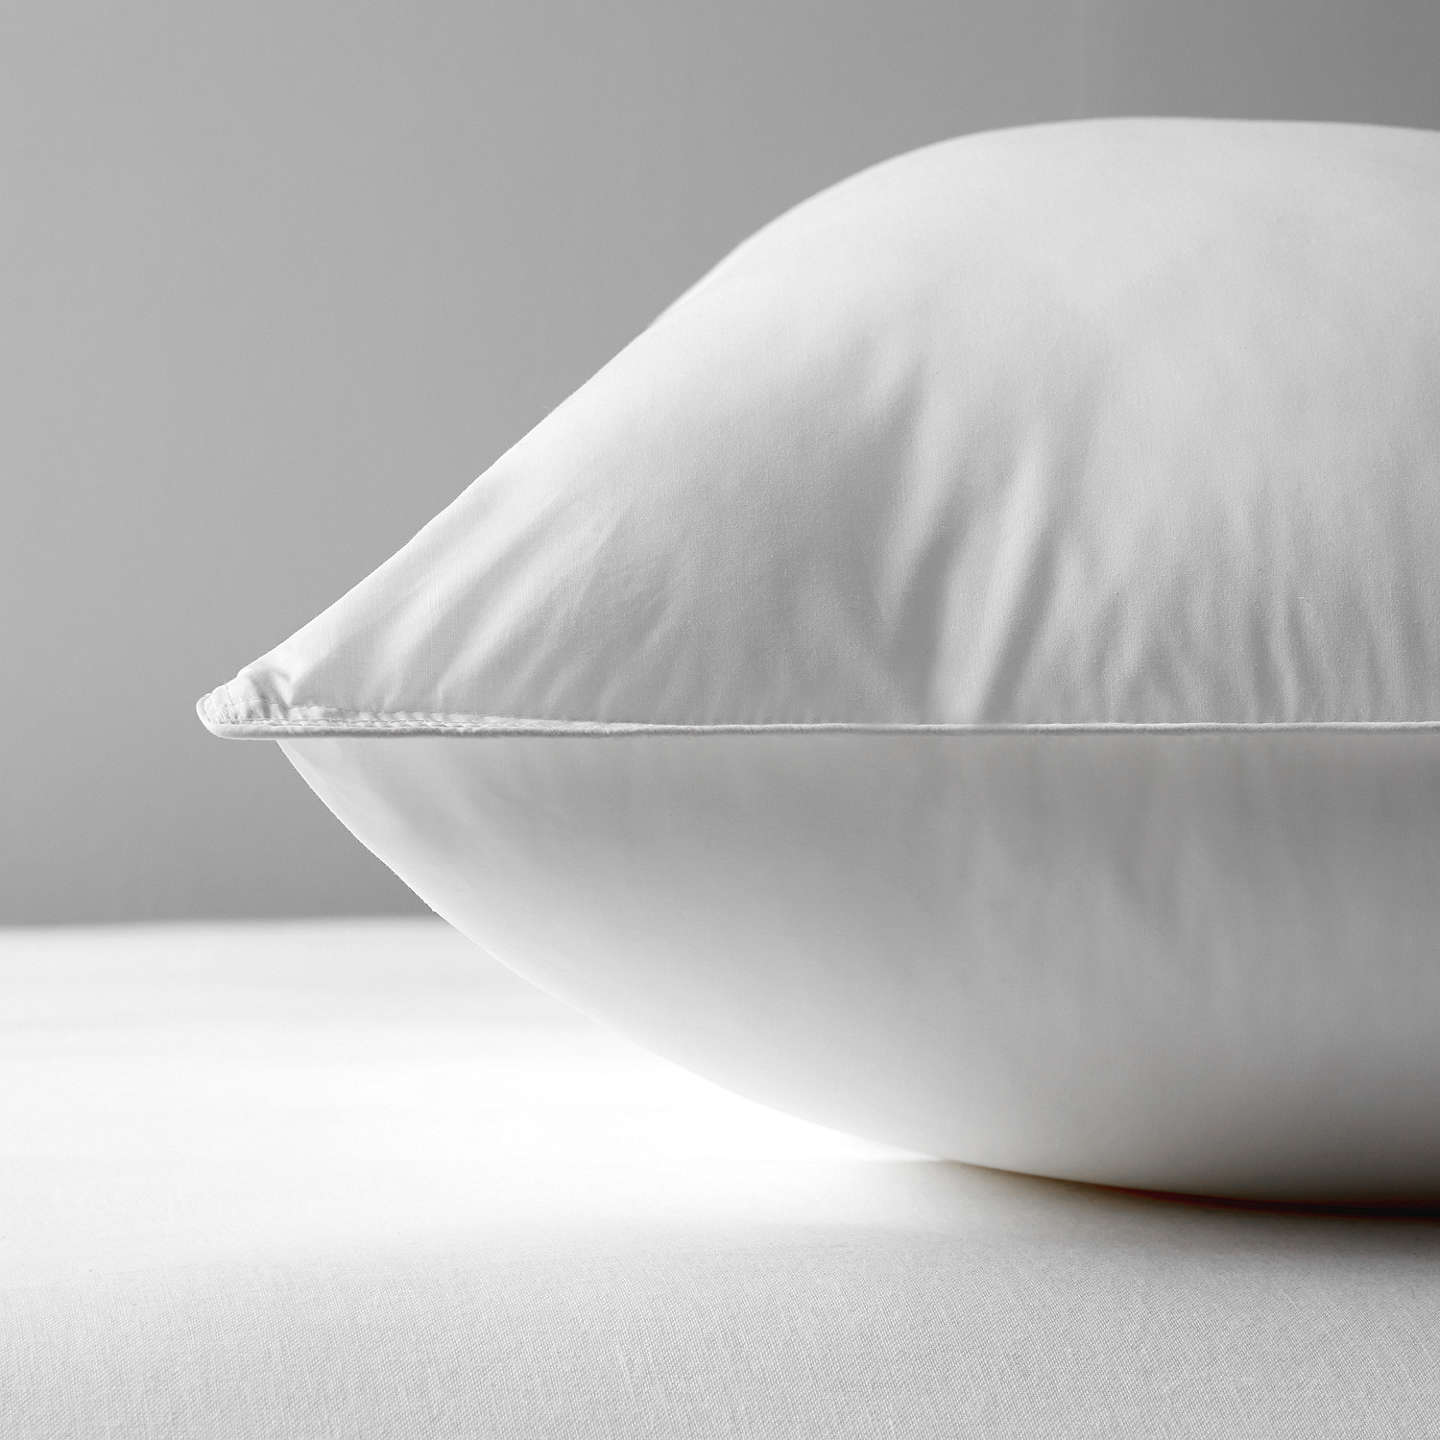 king product today shipping overstock bedding set collection free signature hotel exquisite pillow of bath size